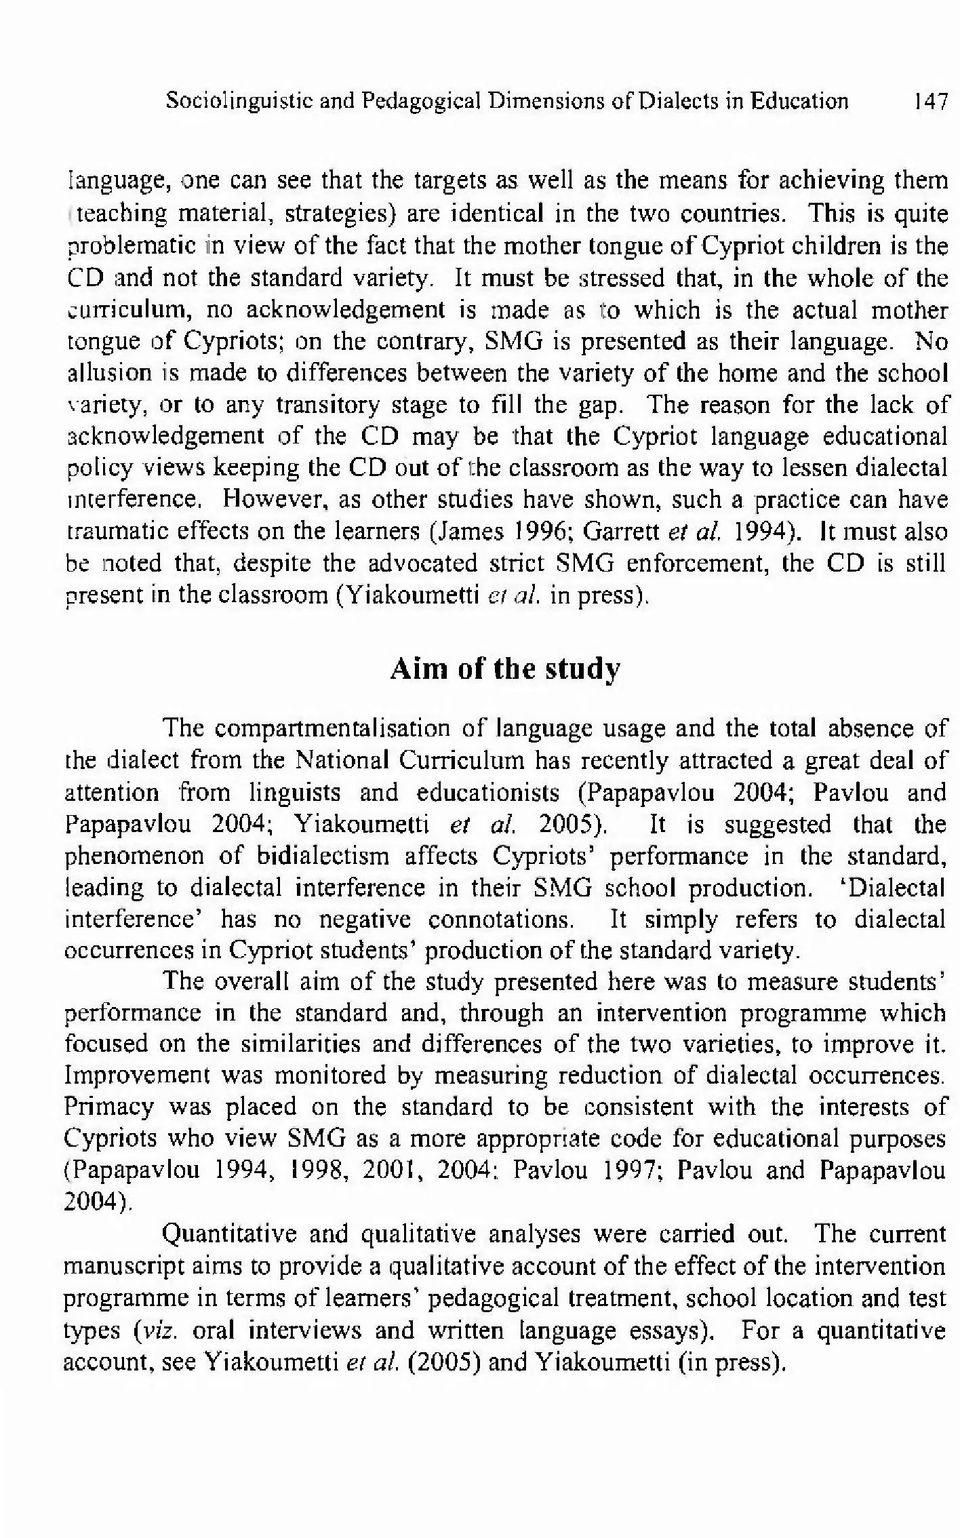 It must be stressed that, in the whole of the curriculum, no acknowledgement is made as to which is the actual mother tongue of Cypriots; on the contrary, SMG is presented as their language.